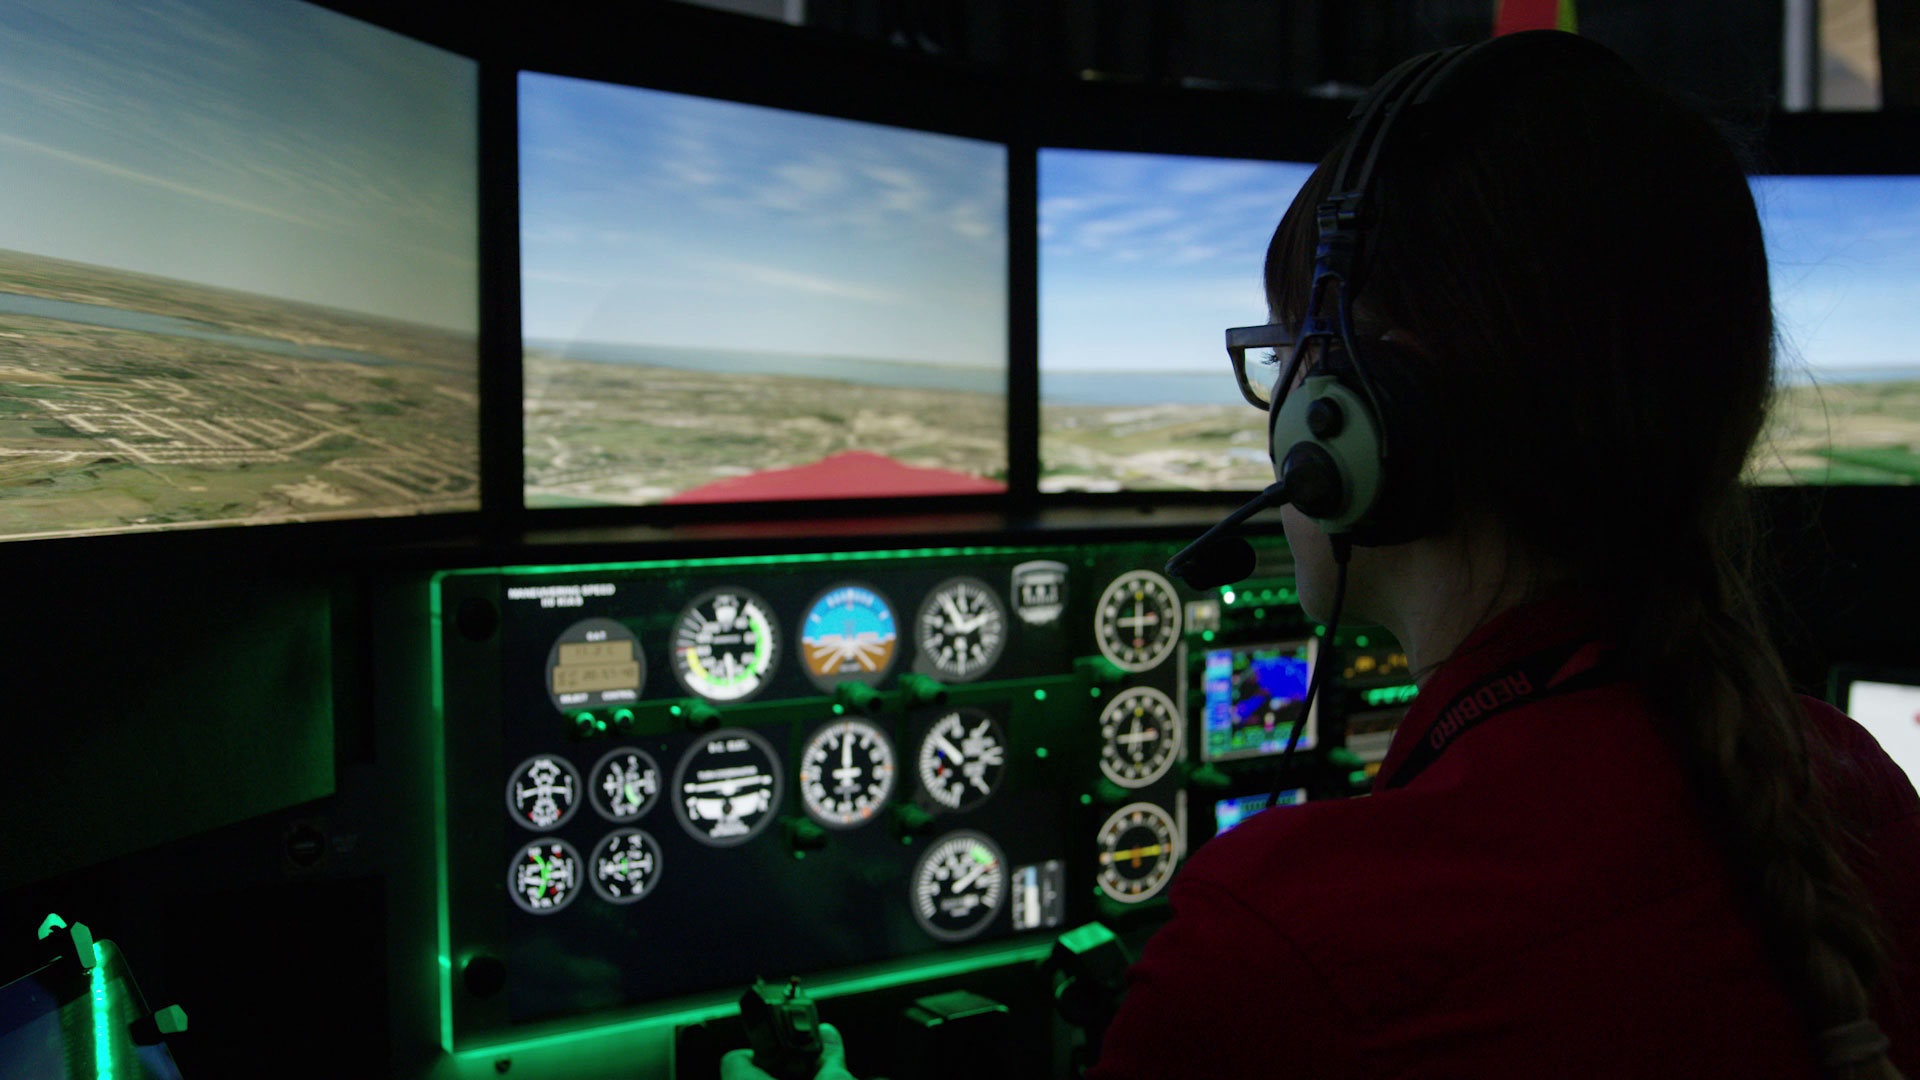 Using a Simulator for Private Pilot Training